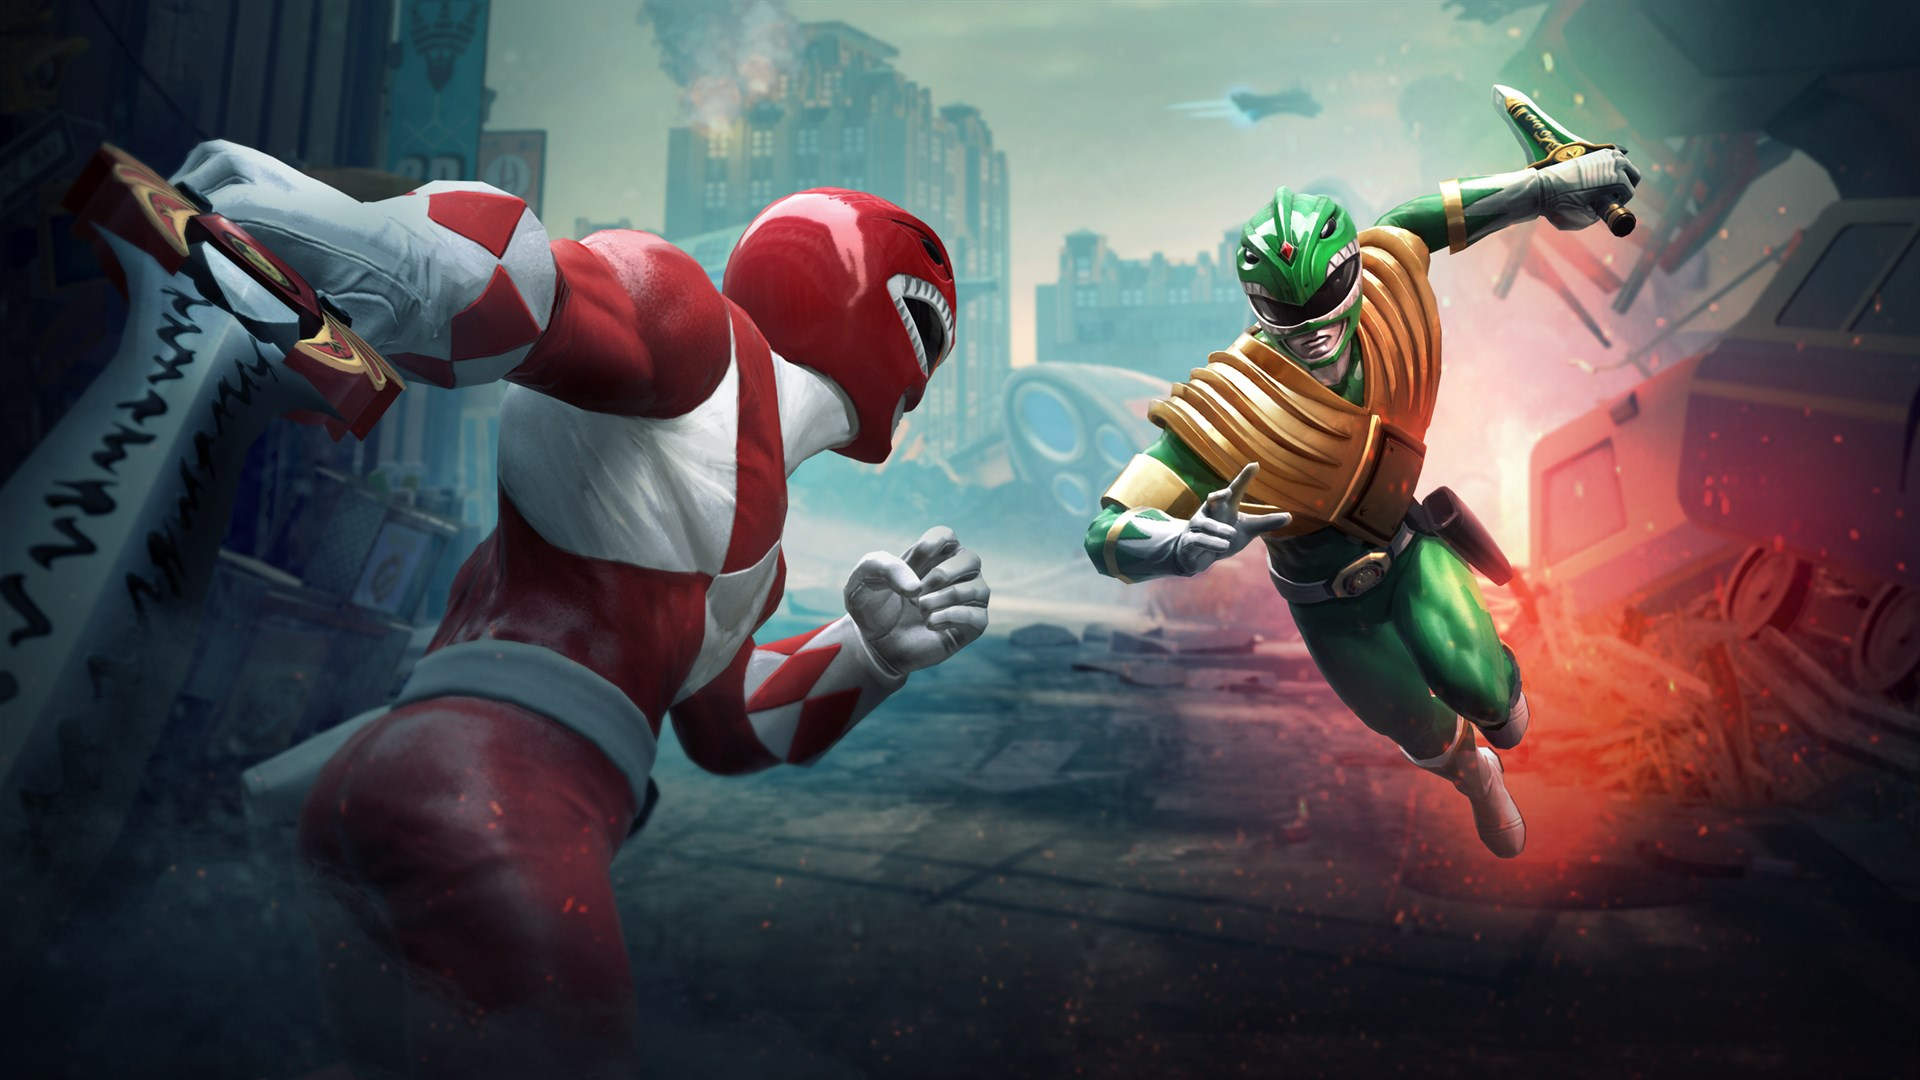 It S Morphin Time As The Power Rangers Battle For The Grid On Xbox